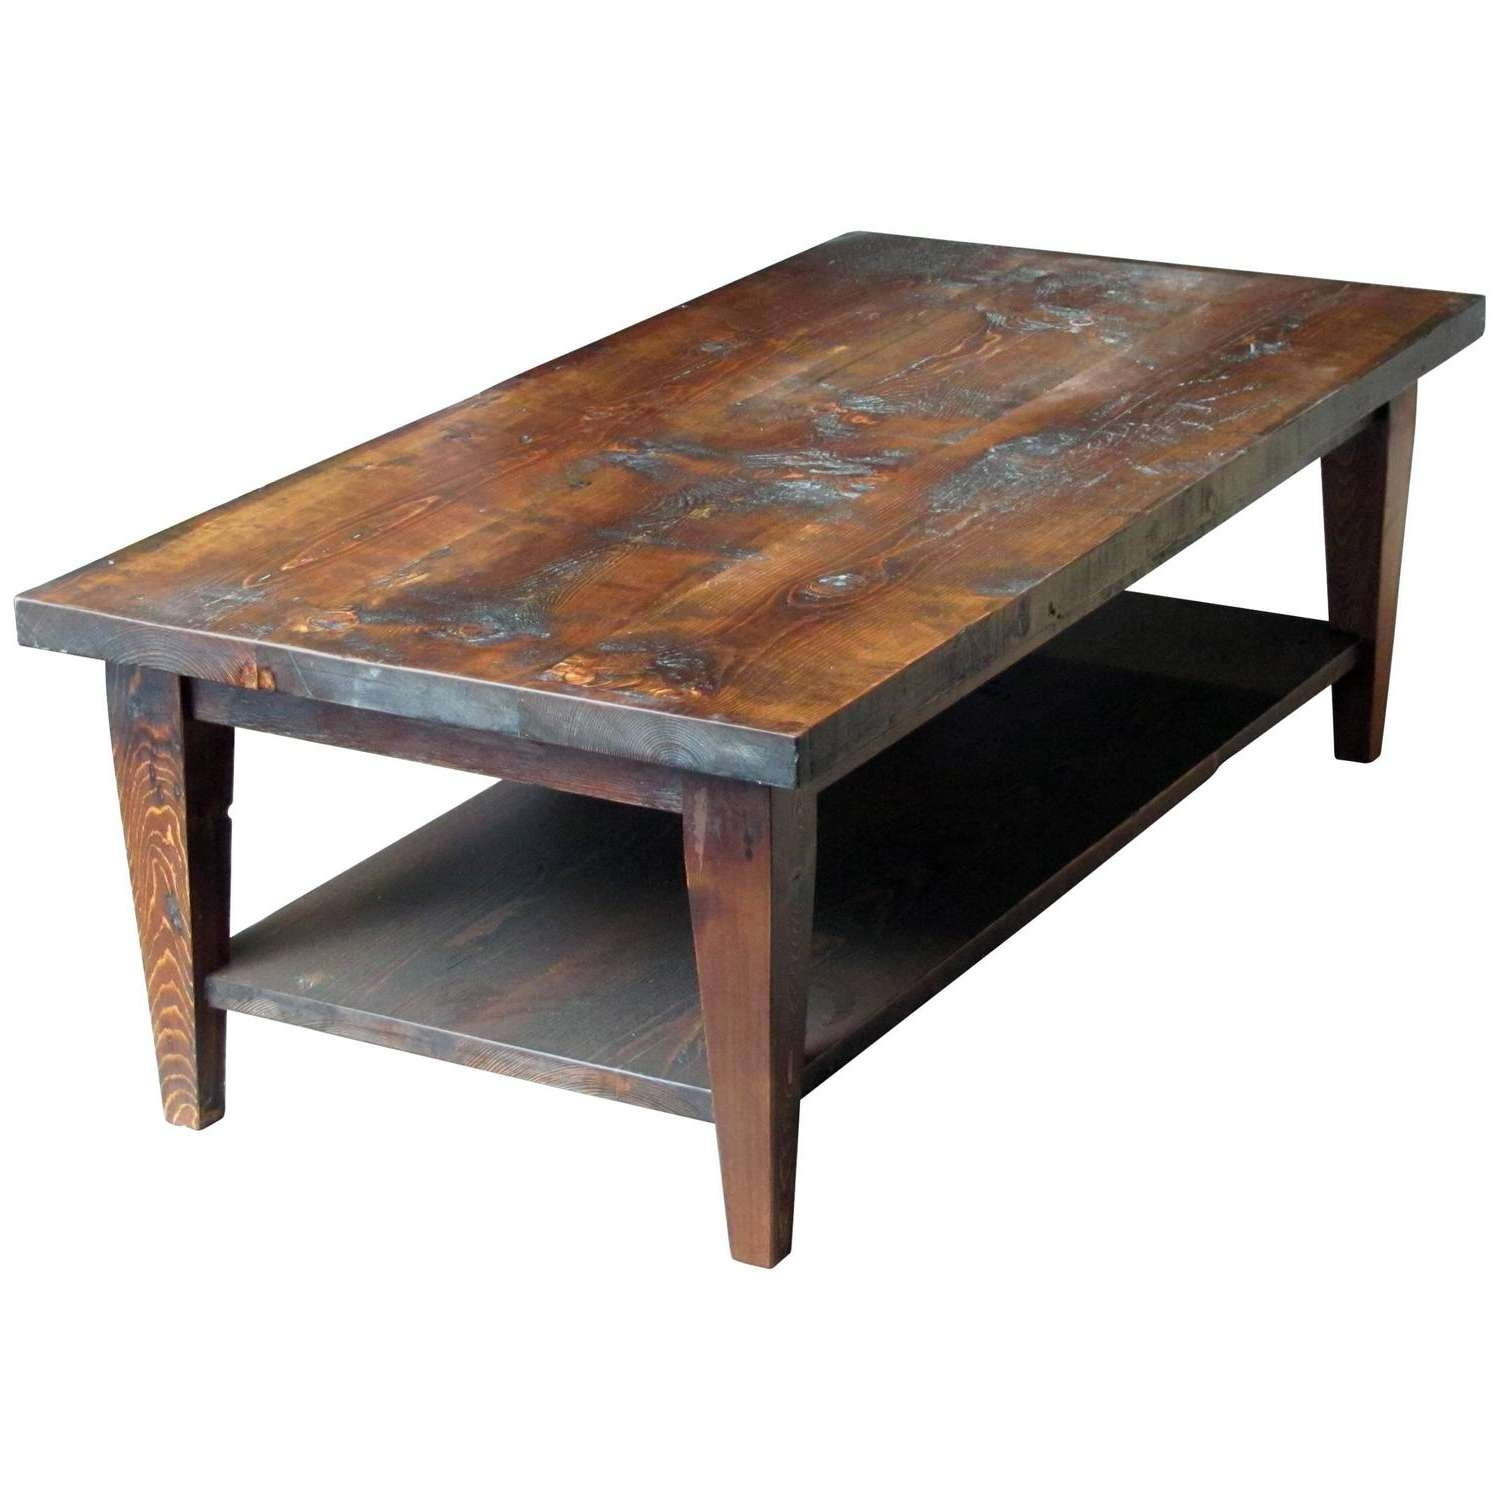 Reclaimed Semi Rustic Pine Coffee Table With Bottom Shelf And Within 2018 Rustic Coffee Tables With Bottom Shelf (View 11 of 20)